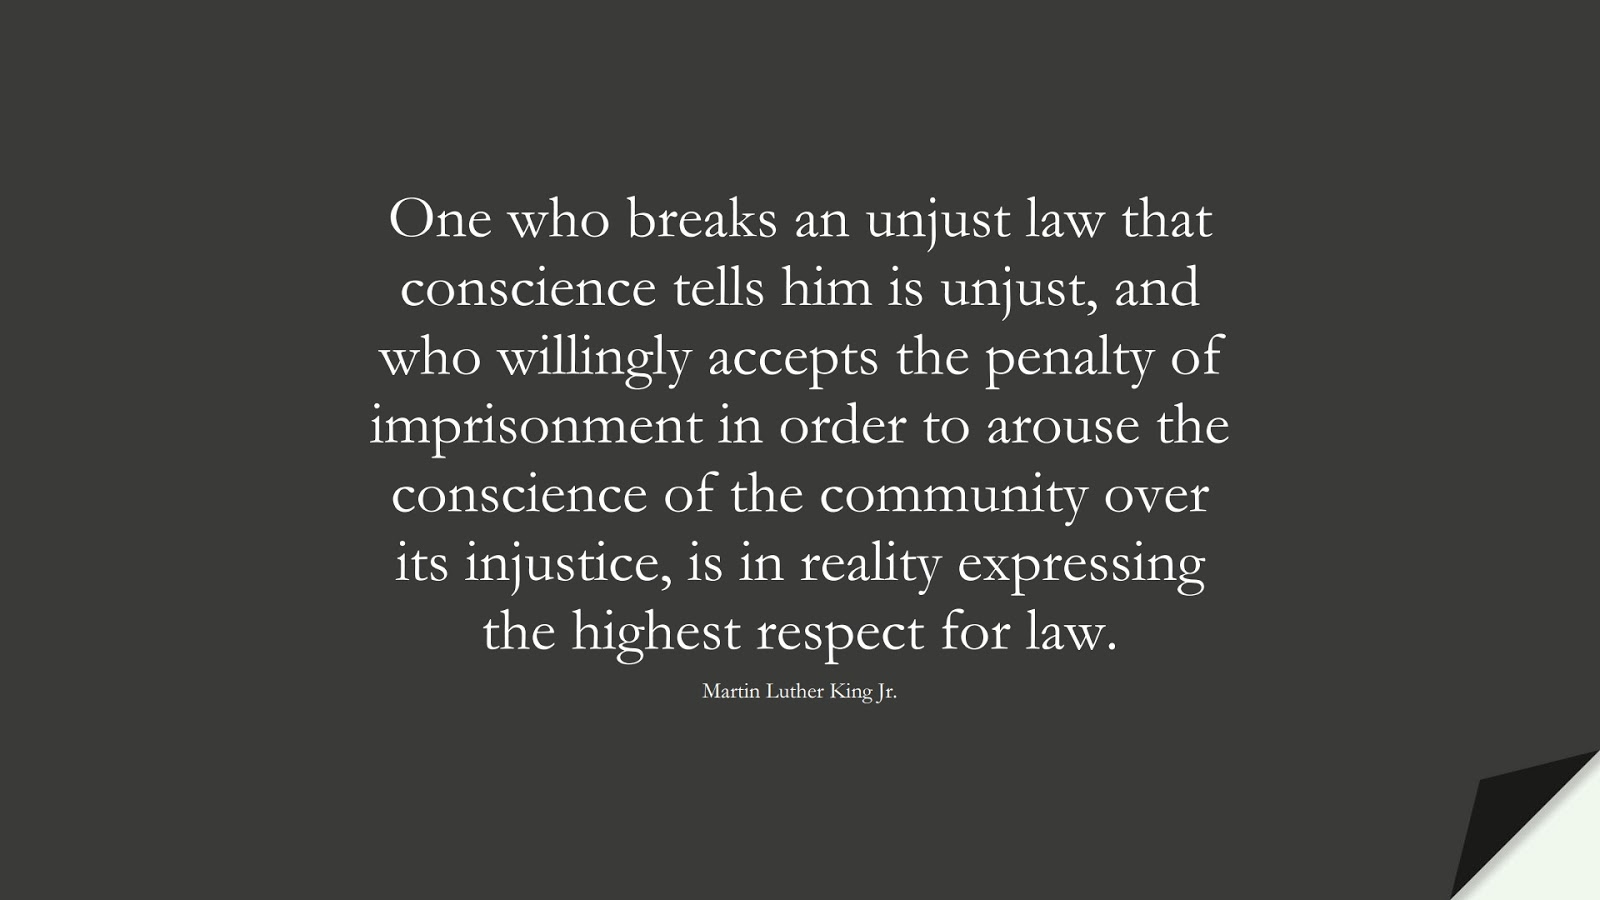 One who breaks an unjust law that conscience tells him is unjust, and who willingly accepts the penalty of imprisonment in order to arouse the conscience of the community over its injustice, is in reality expressing the highest respect for law. (Martin Luther King Jr.);  #MartinLutherKingJrQuotes